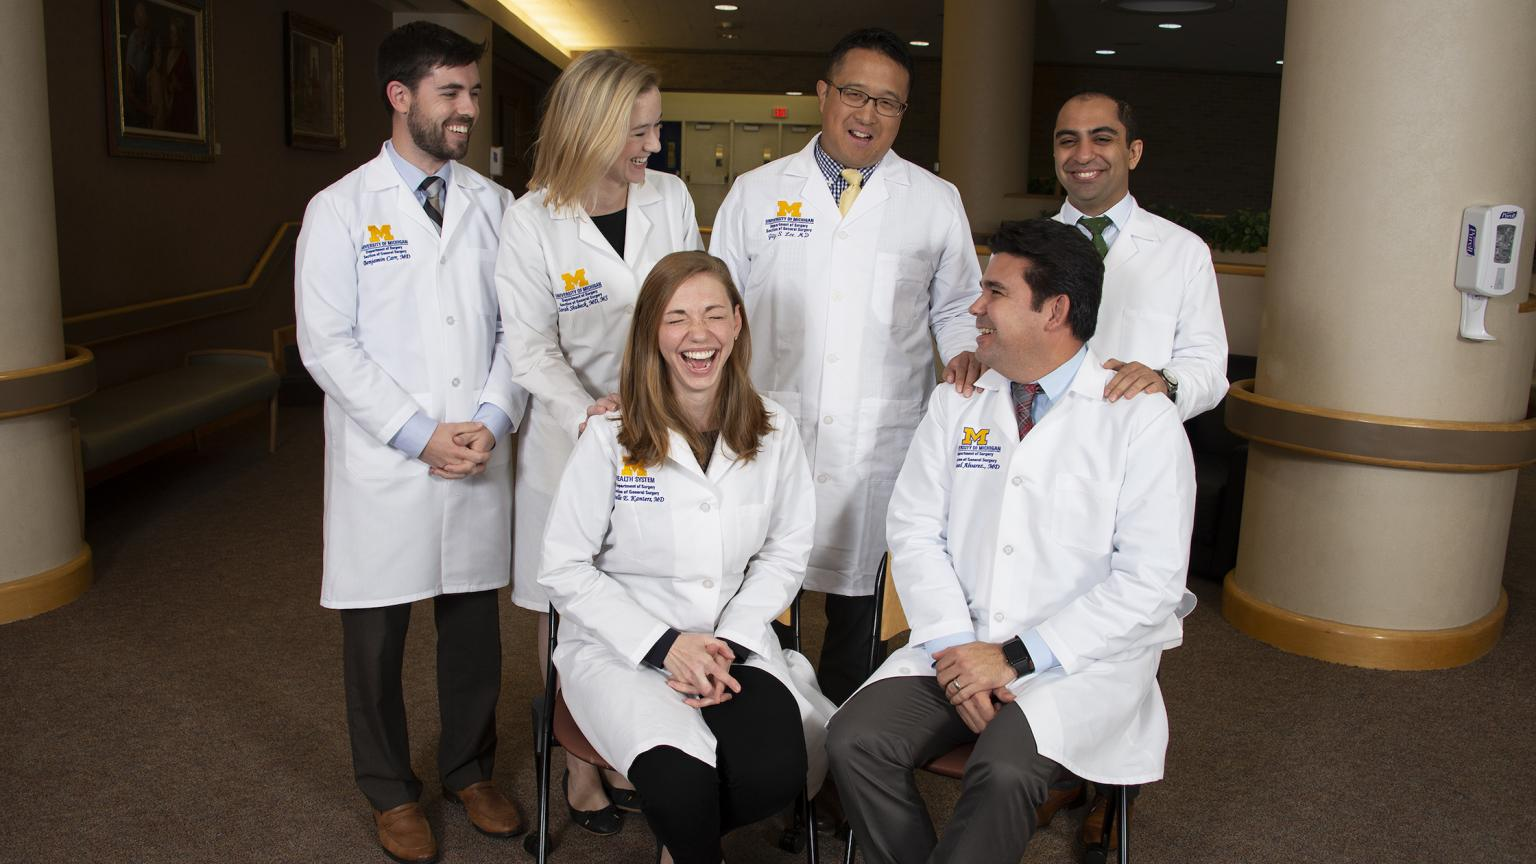 General Surgery Residents Class of 2020